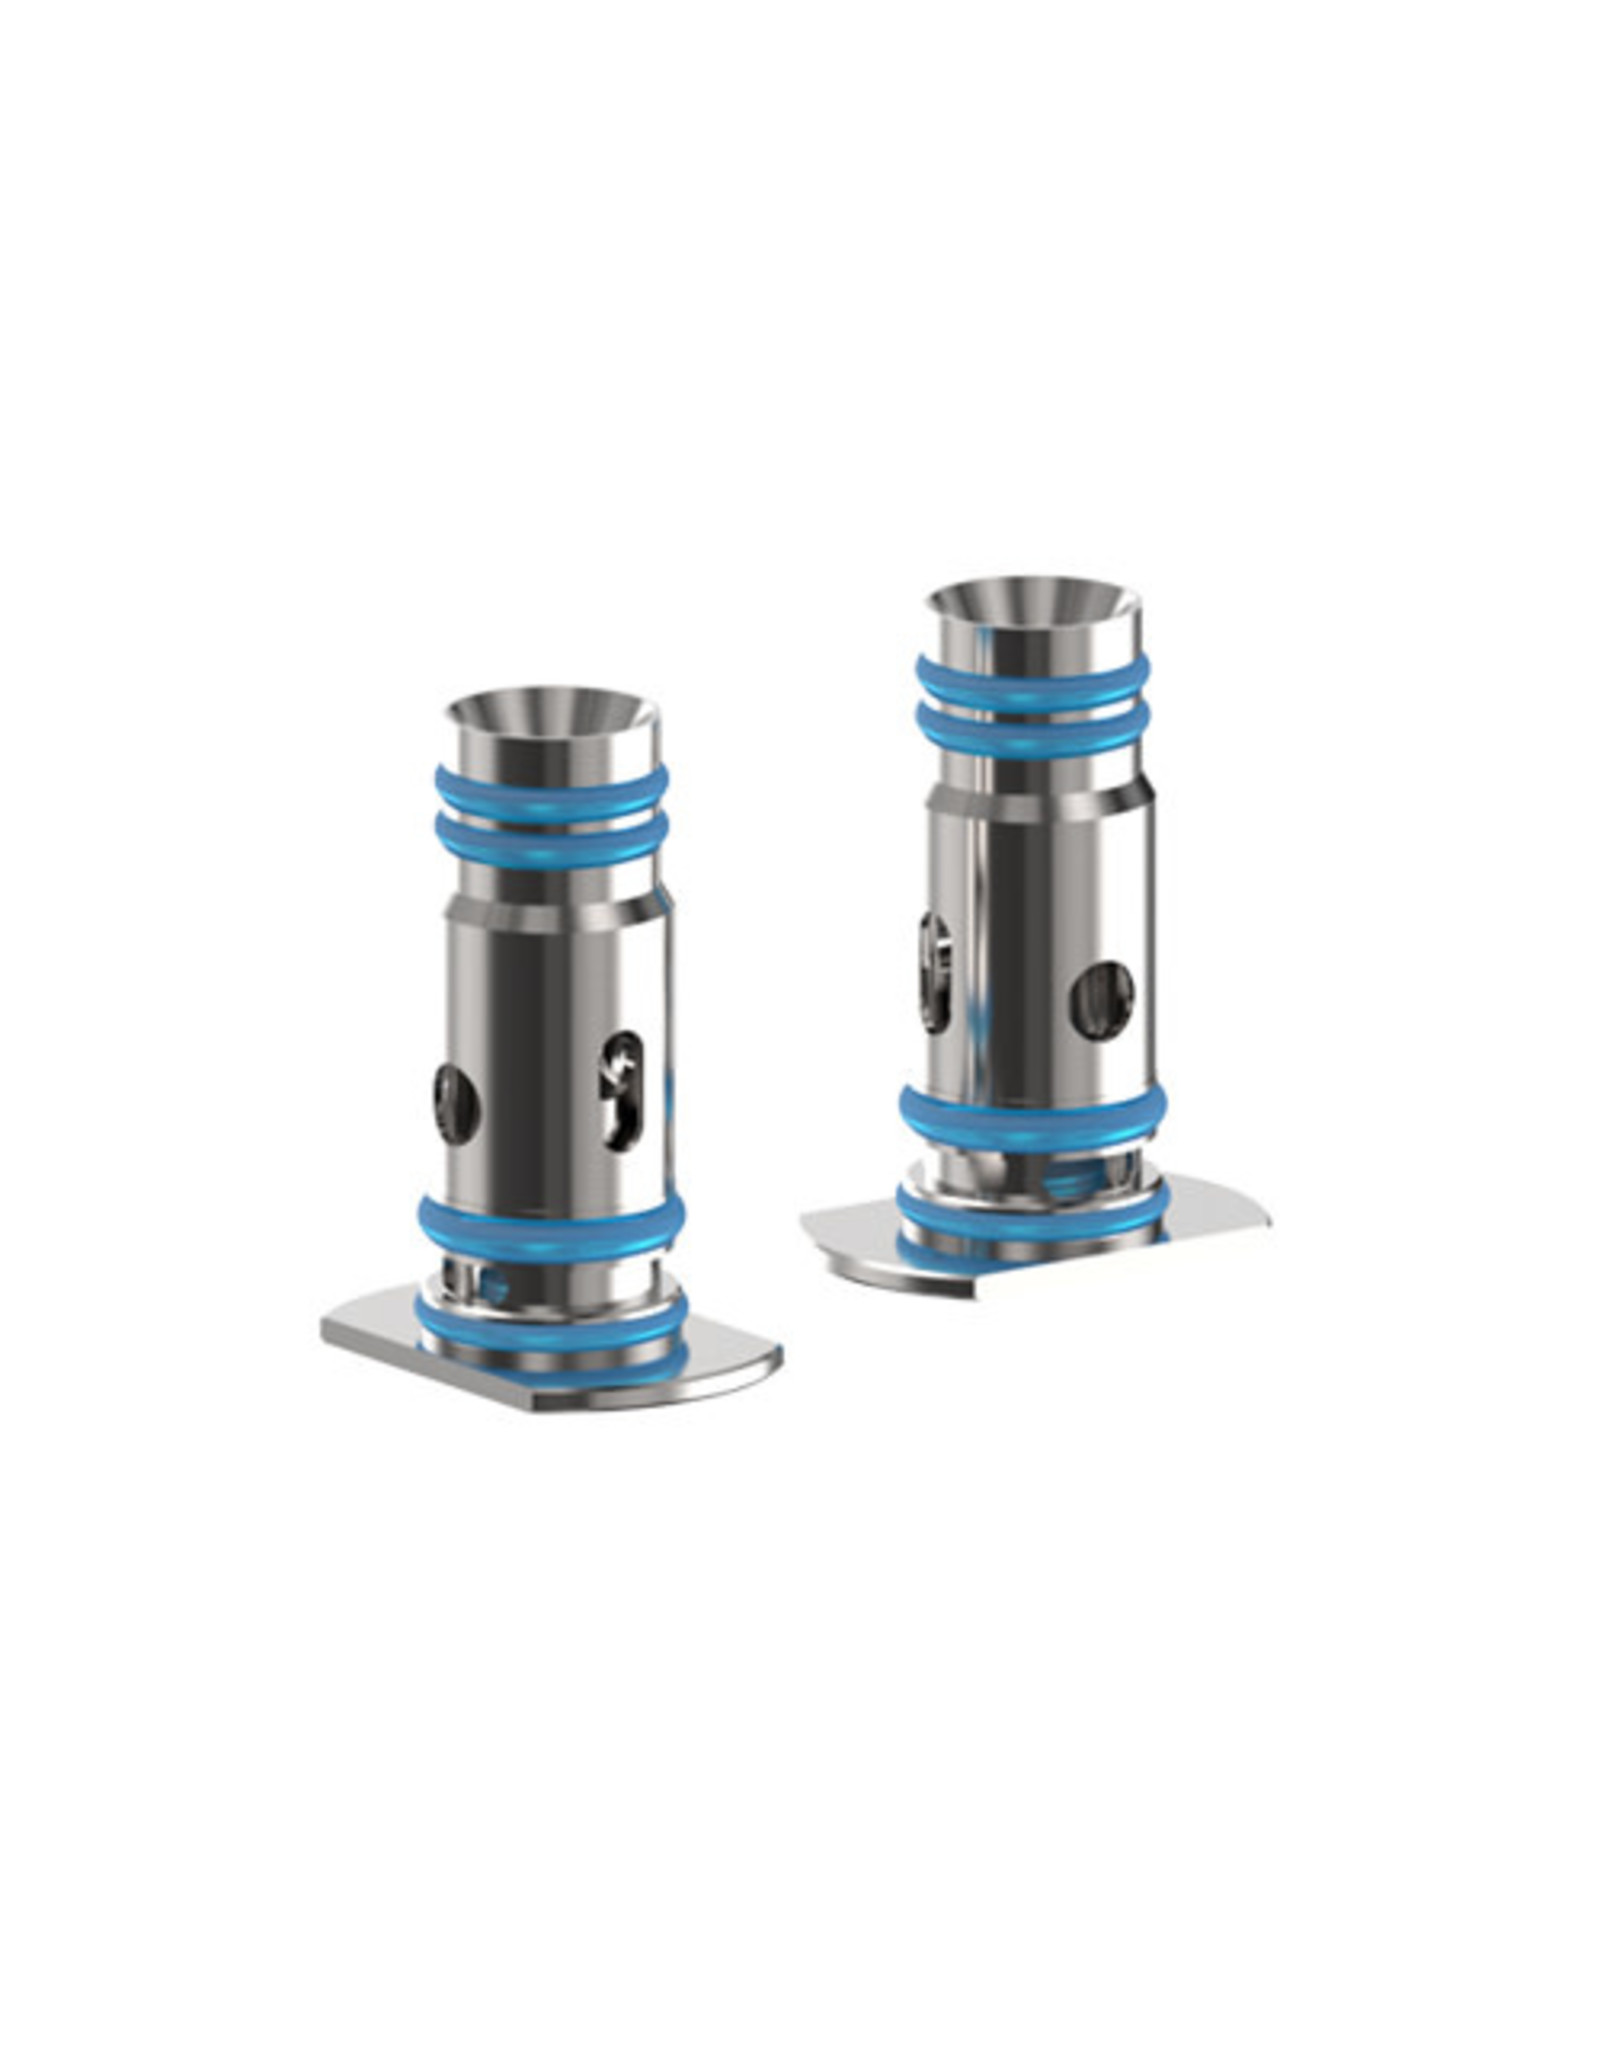 ASPIRE ASPIRE BREEZE NXT COIL